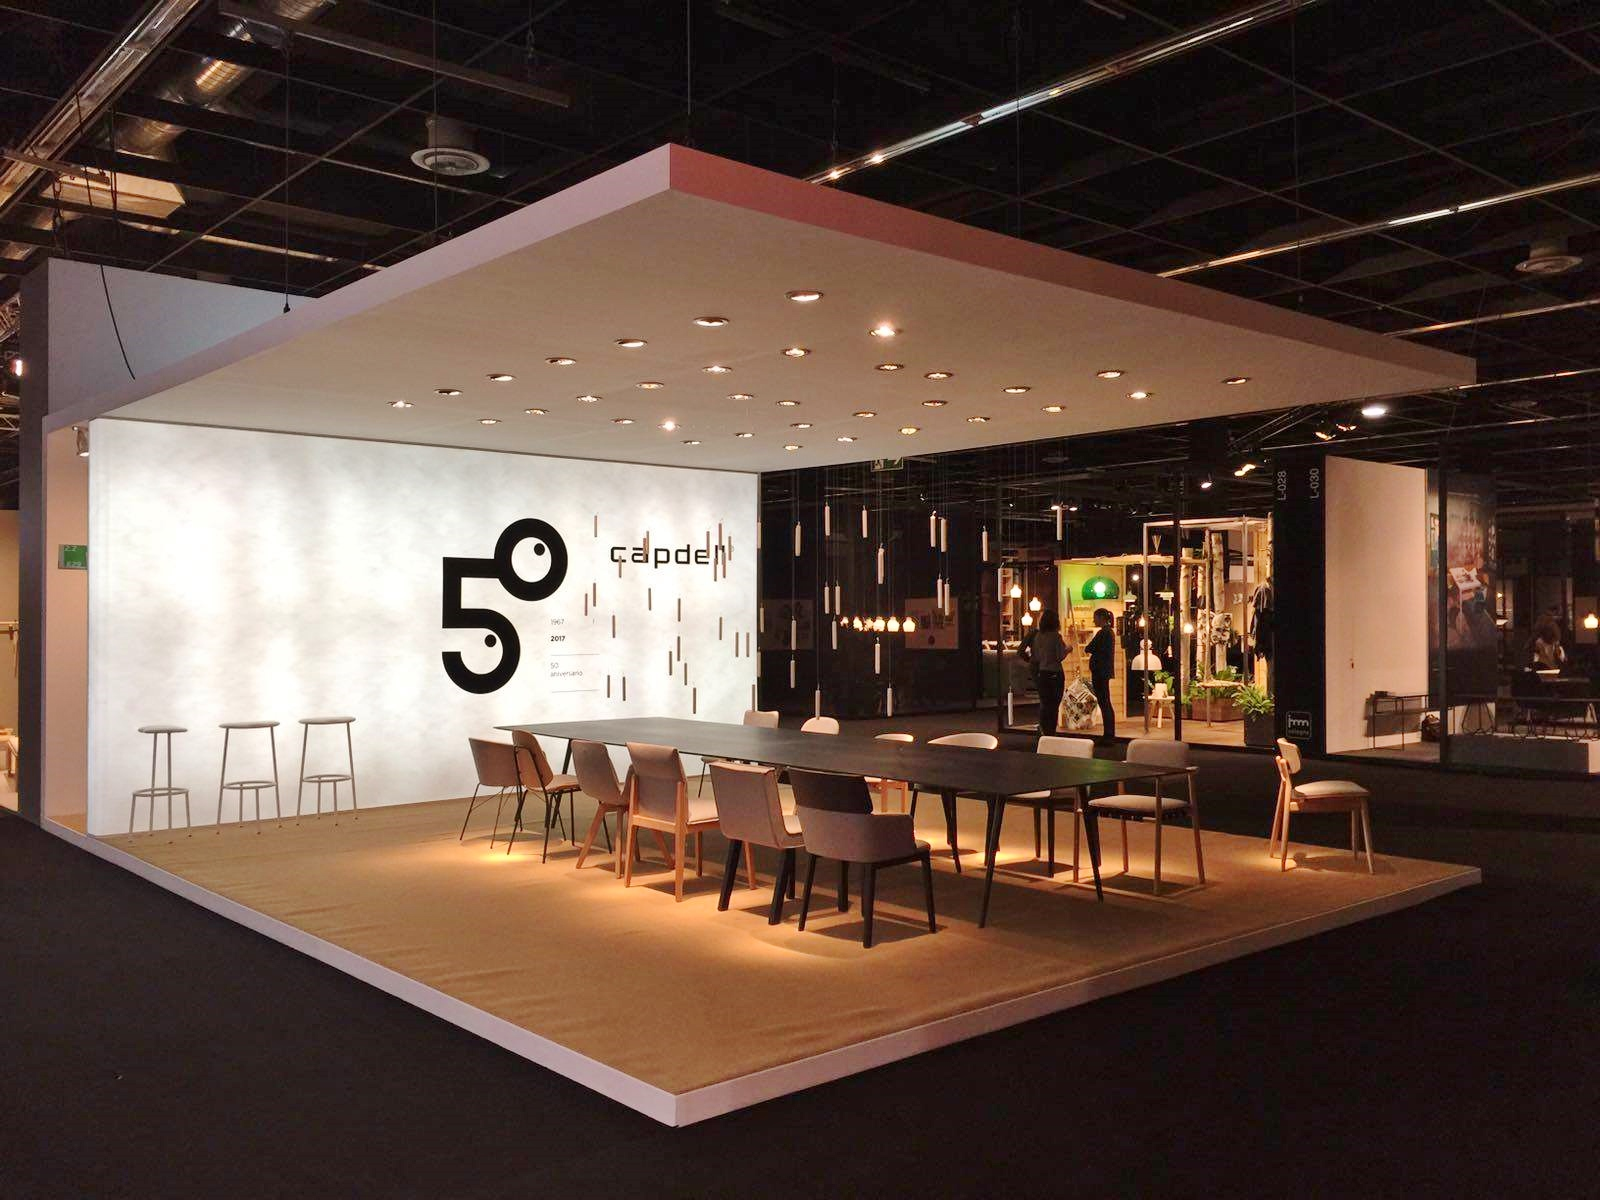 imm-cologne-2017-capdell-chairs